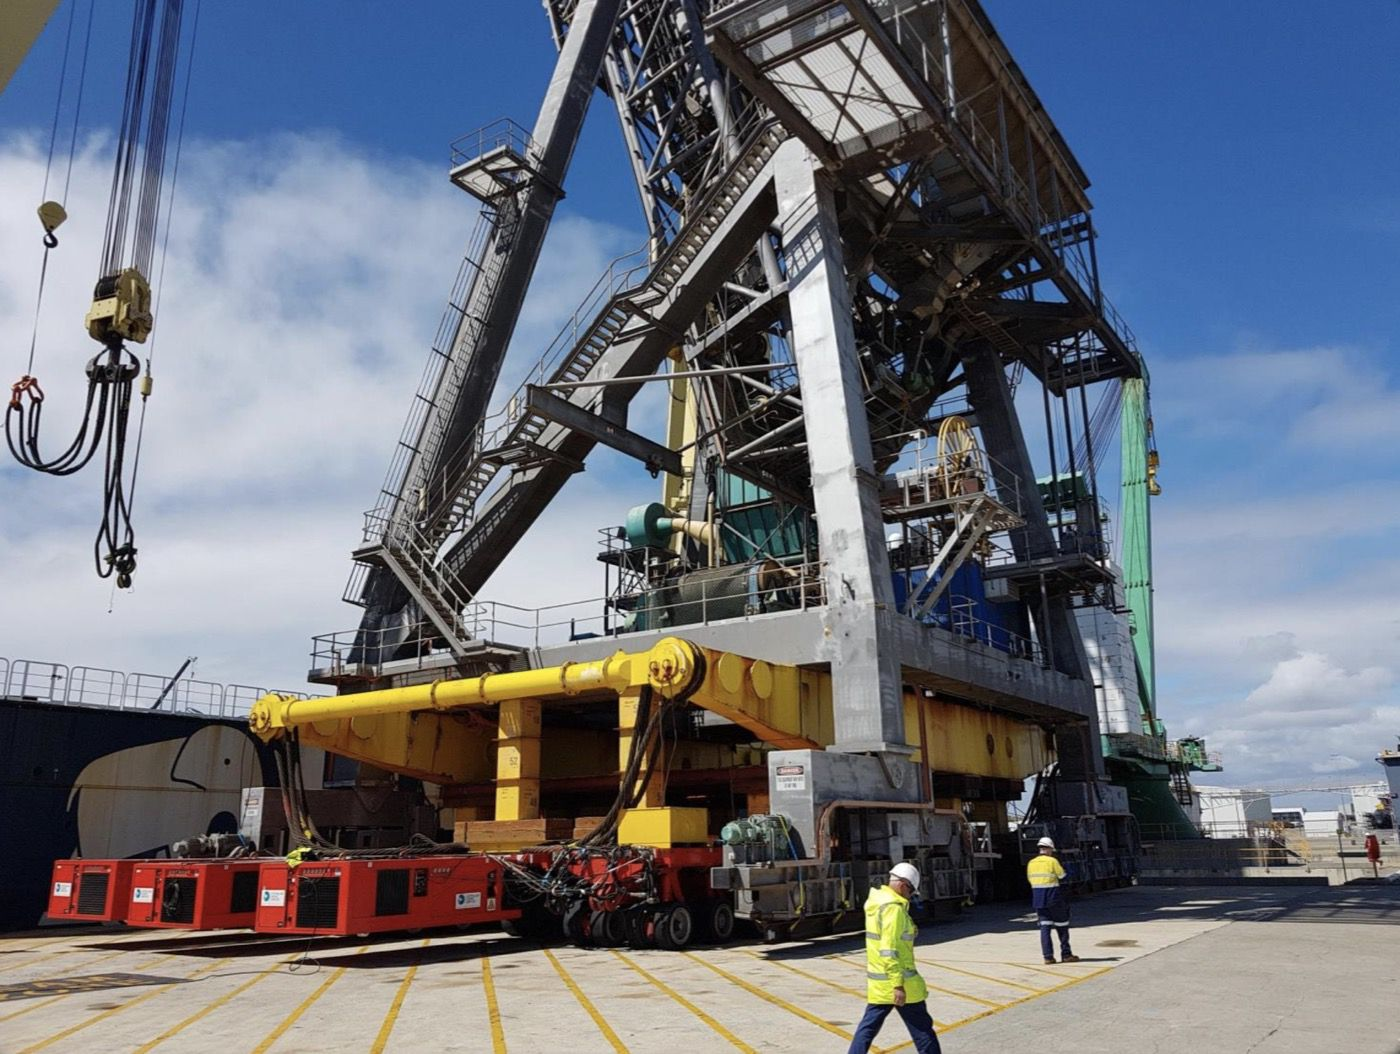 1-fremantle-port-crane-removal@2x